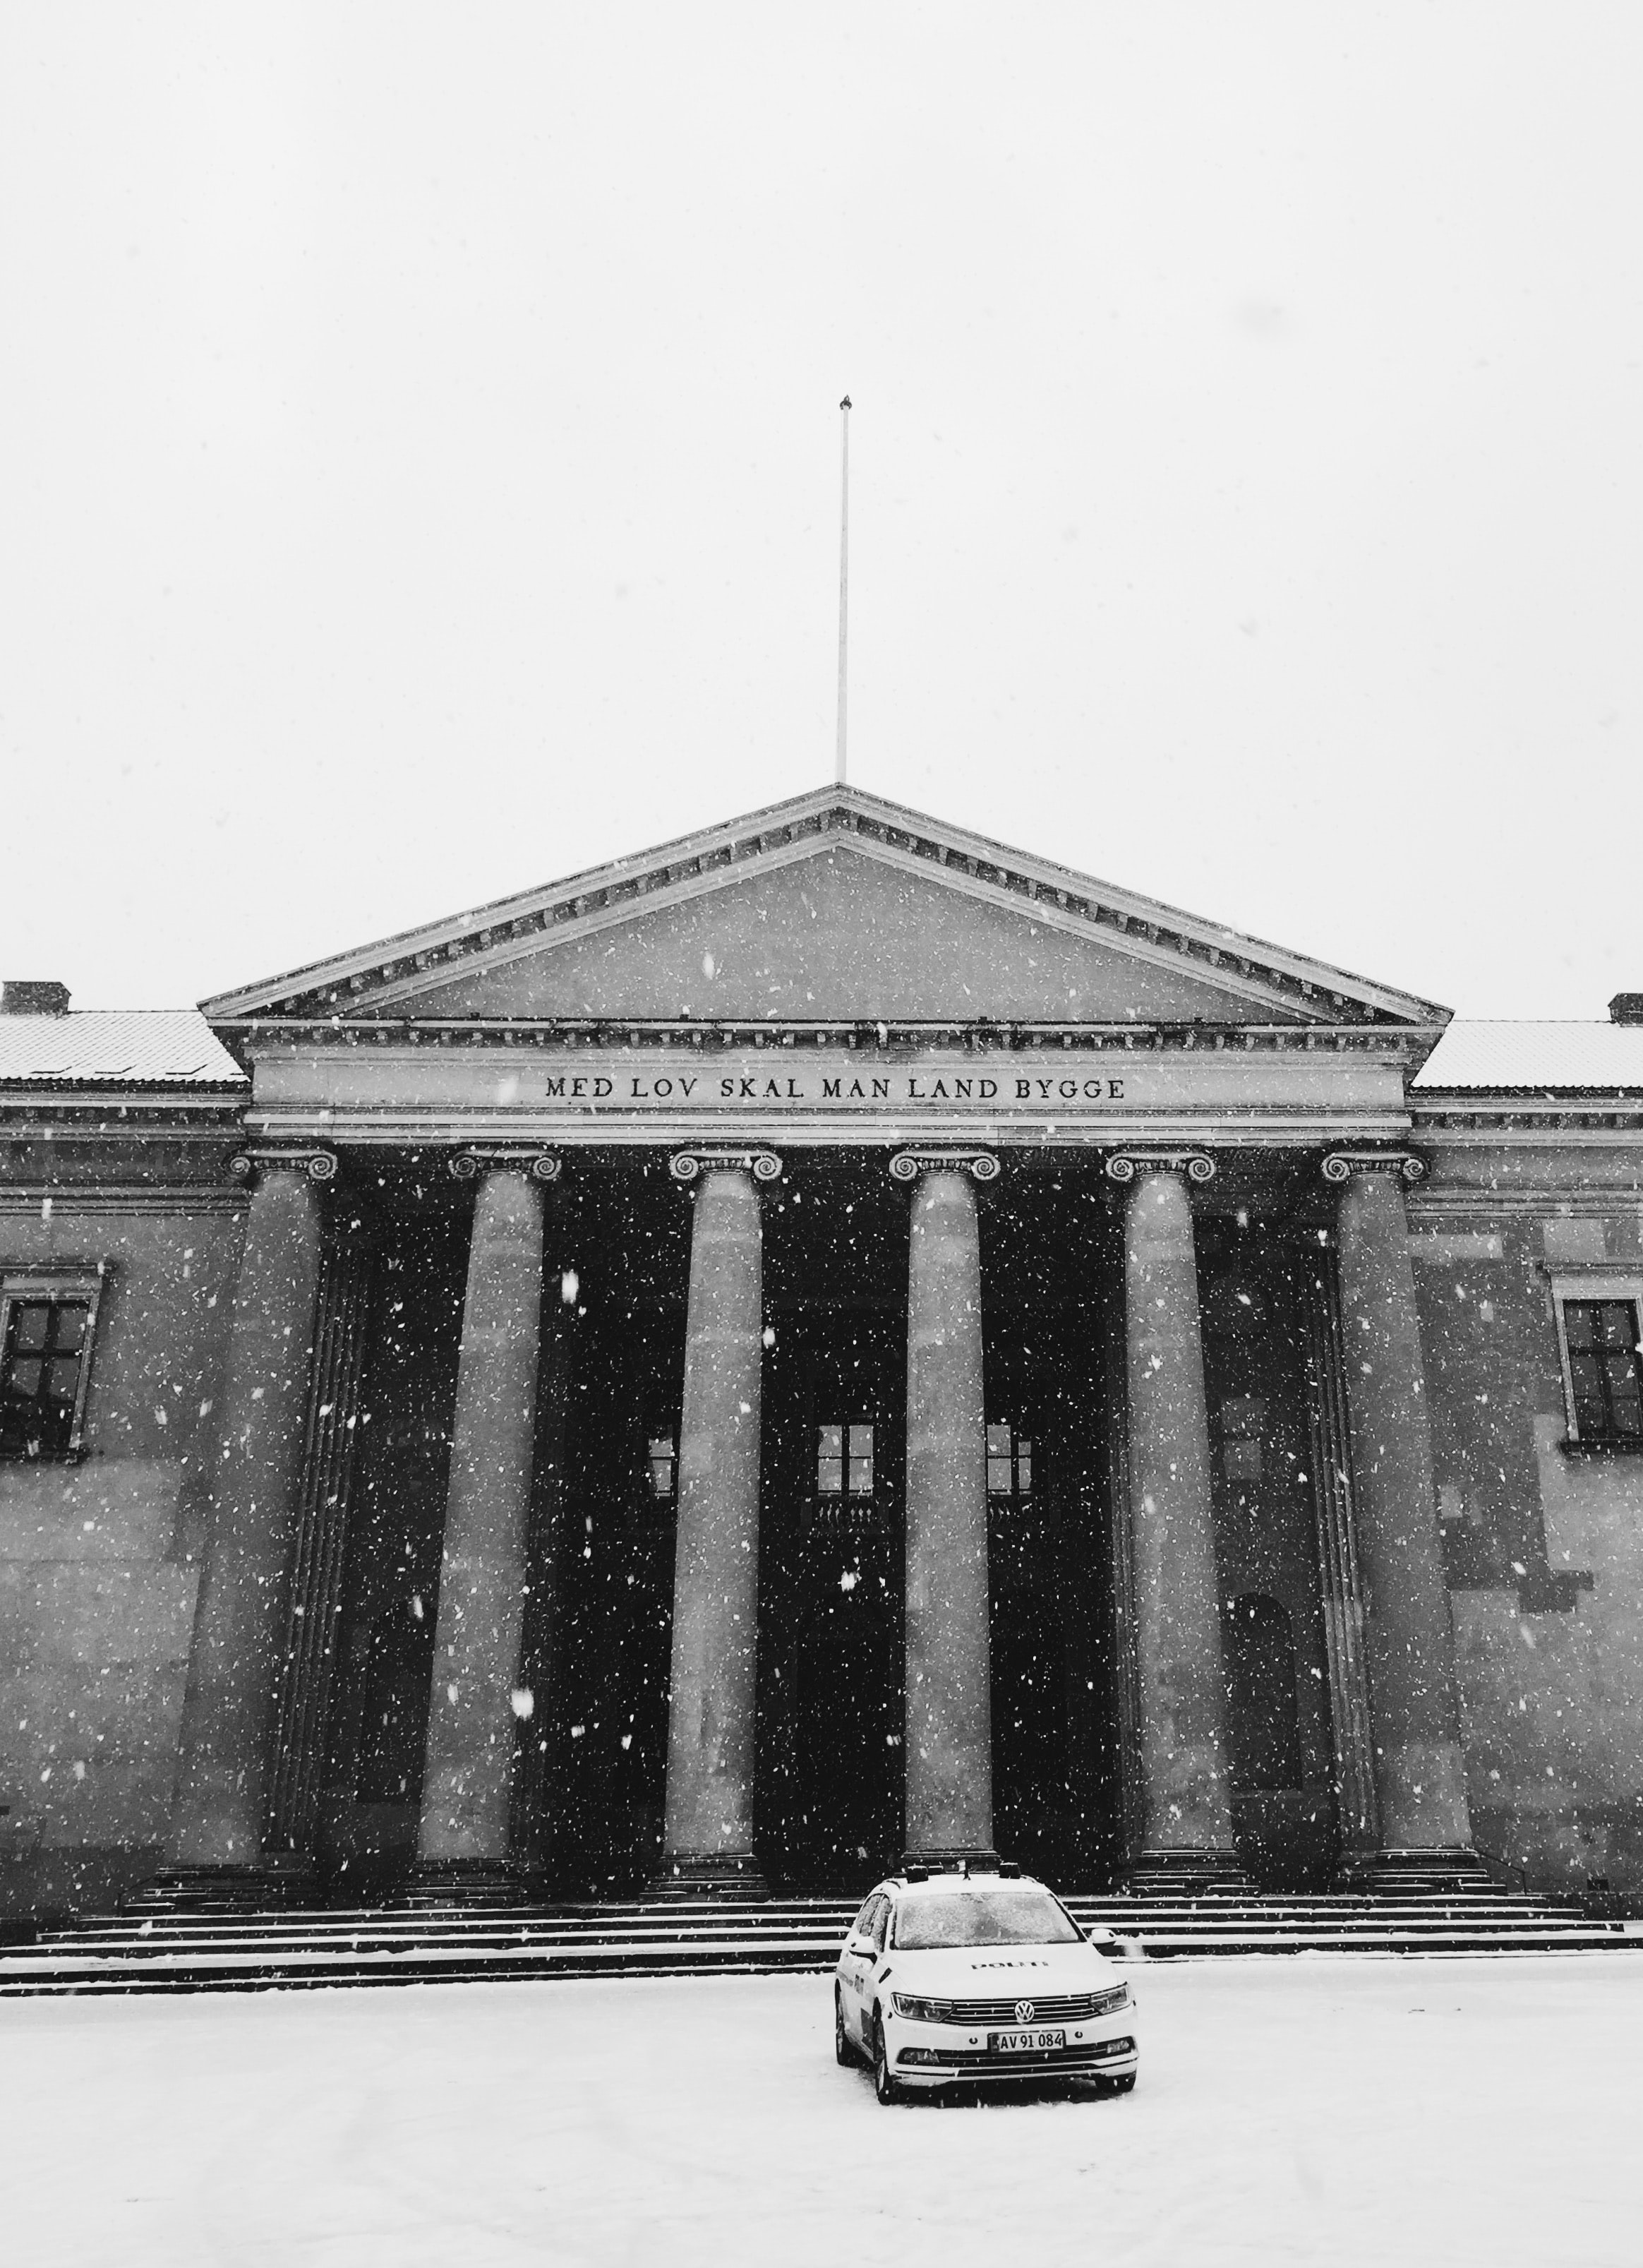 Medlov Sxal man Land Bygge building with snow